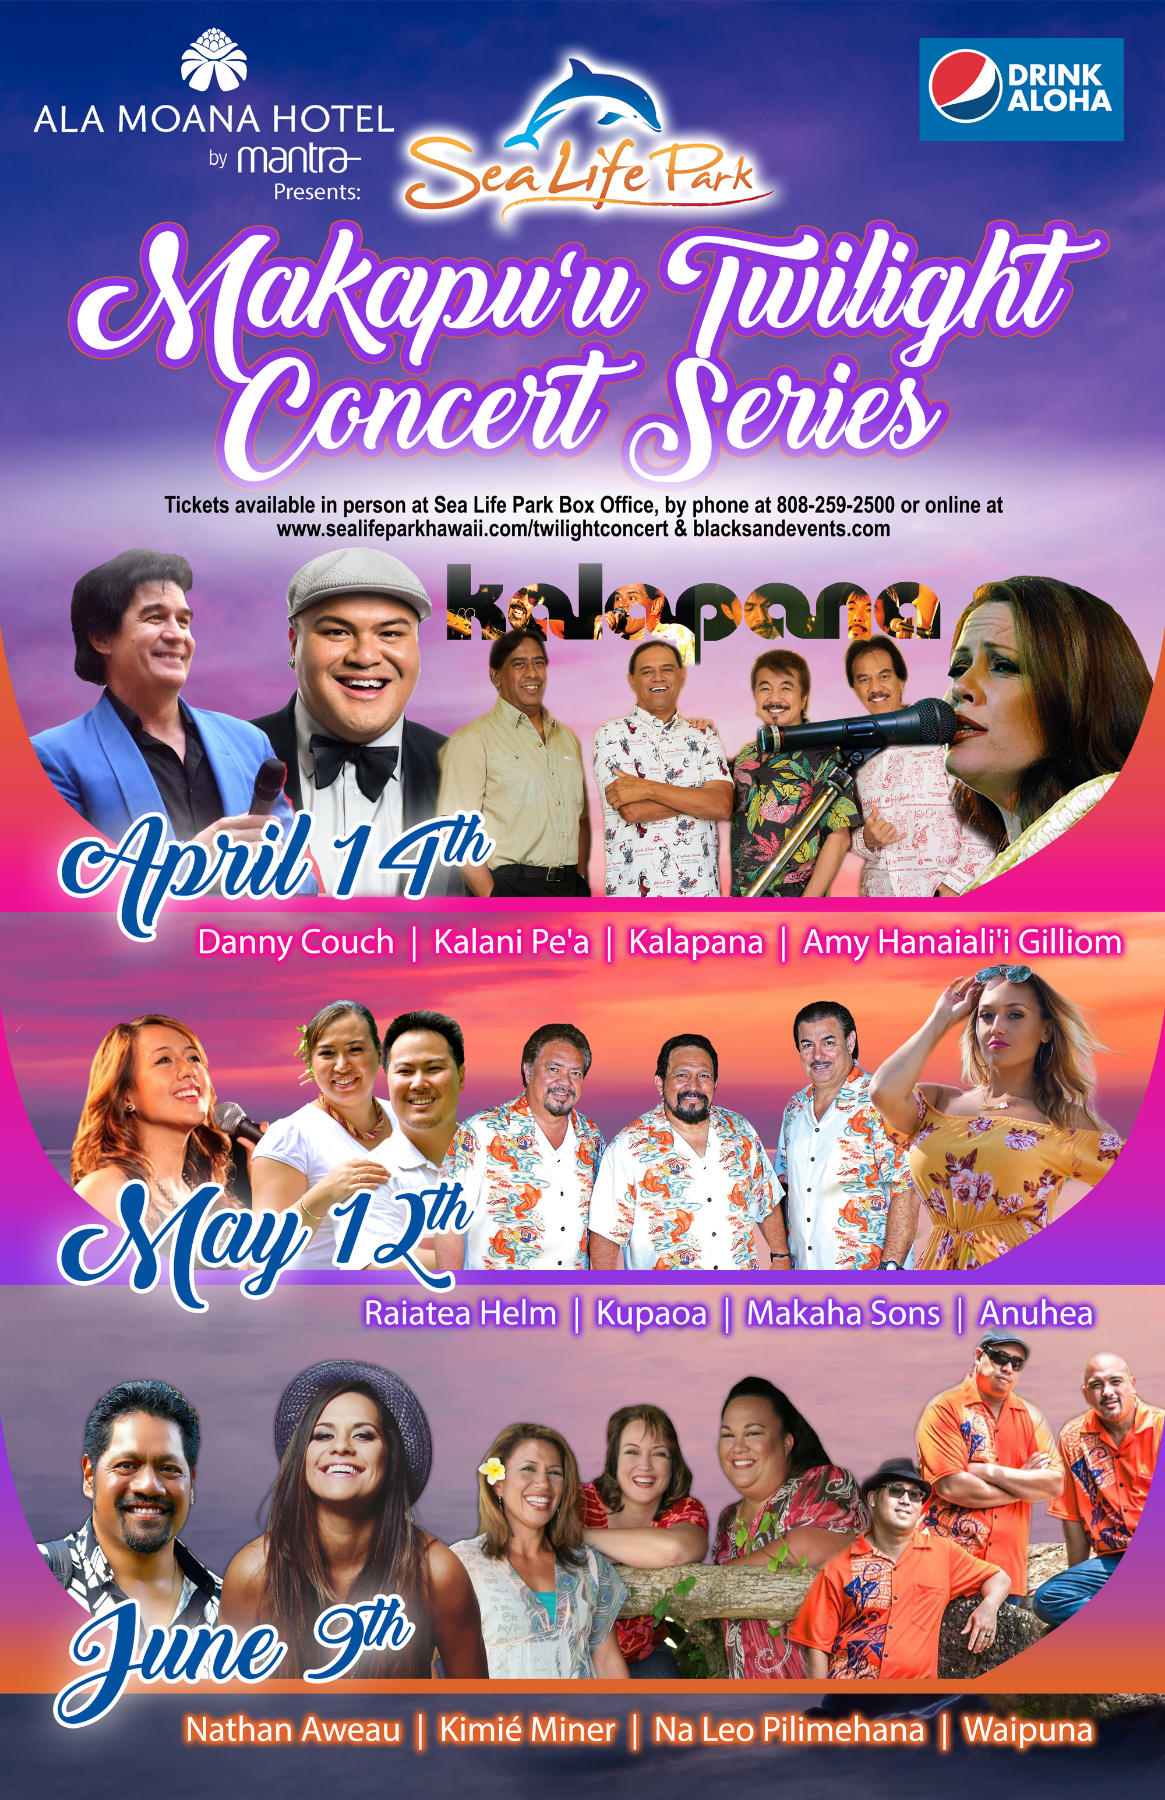 Makapuʻu Twilight Concert Series